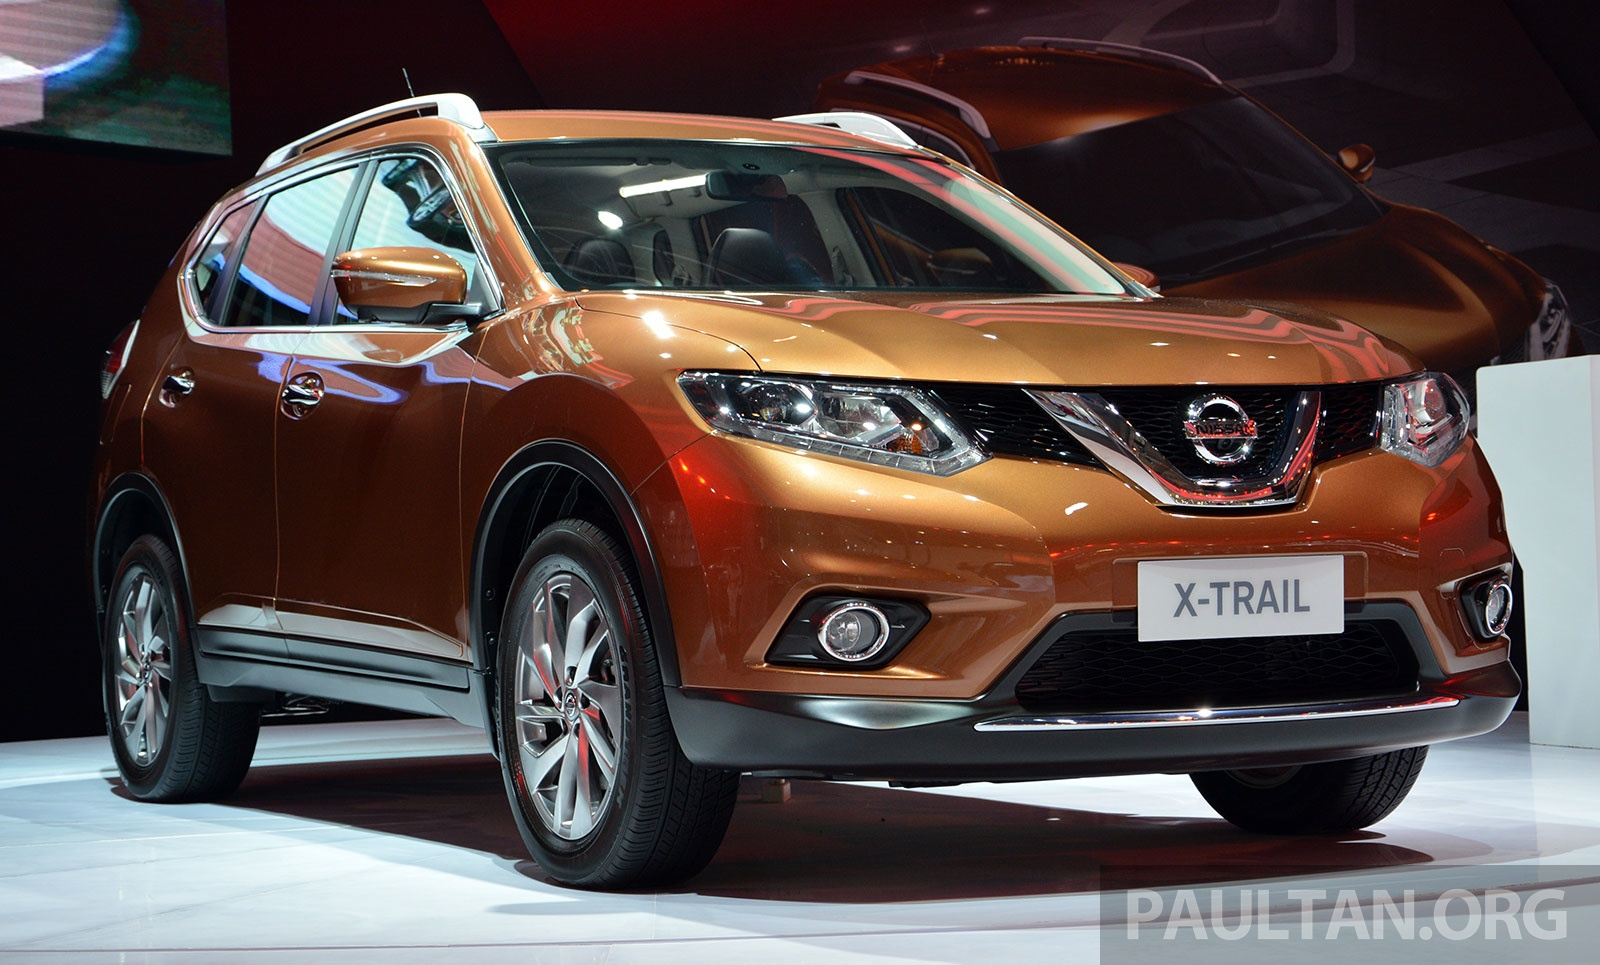 iims 2014 new nissan x trail launched in indonesia. Black Bedroom Furniture Sets. Home Design Ideas